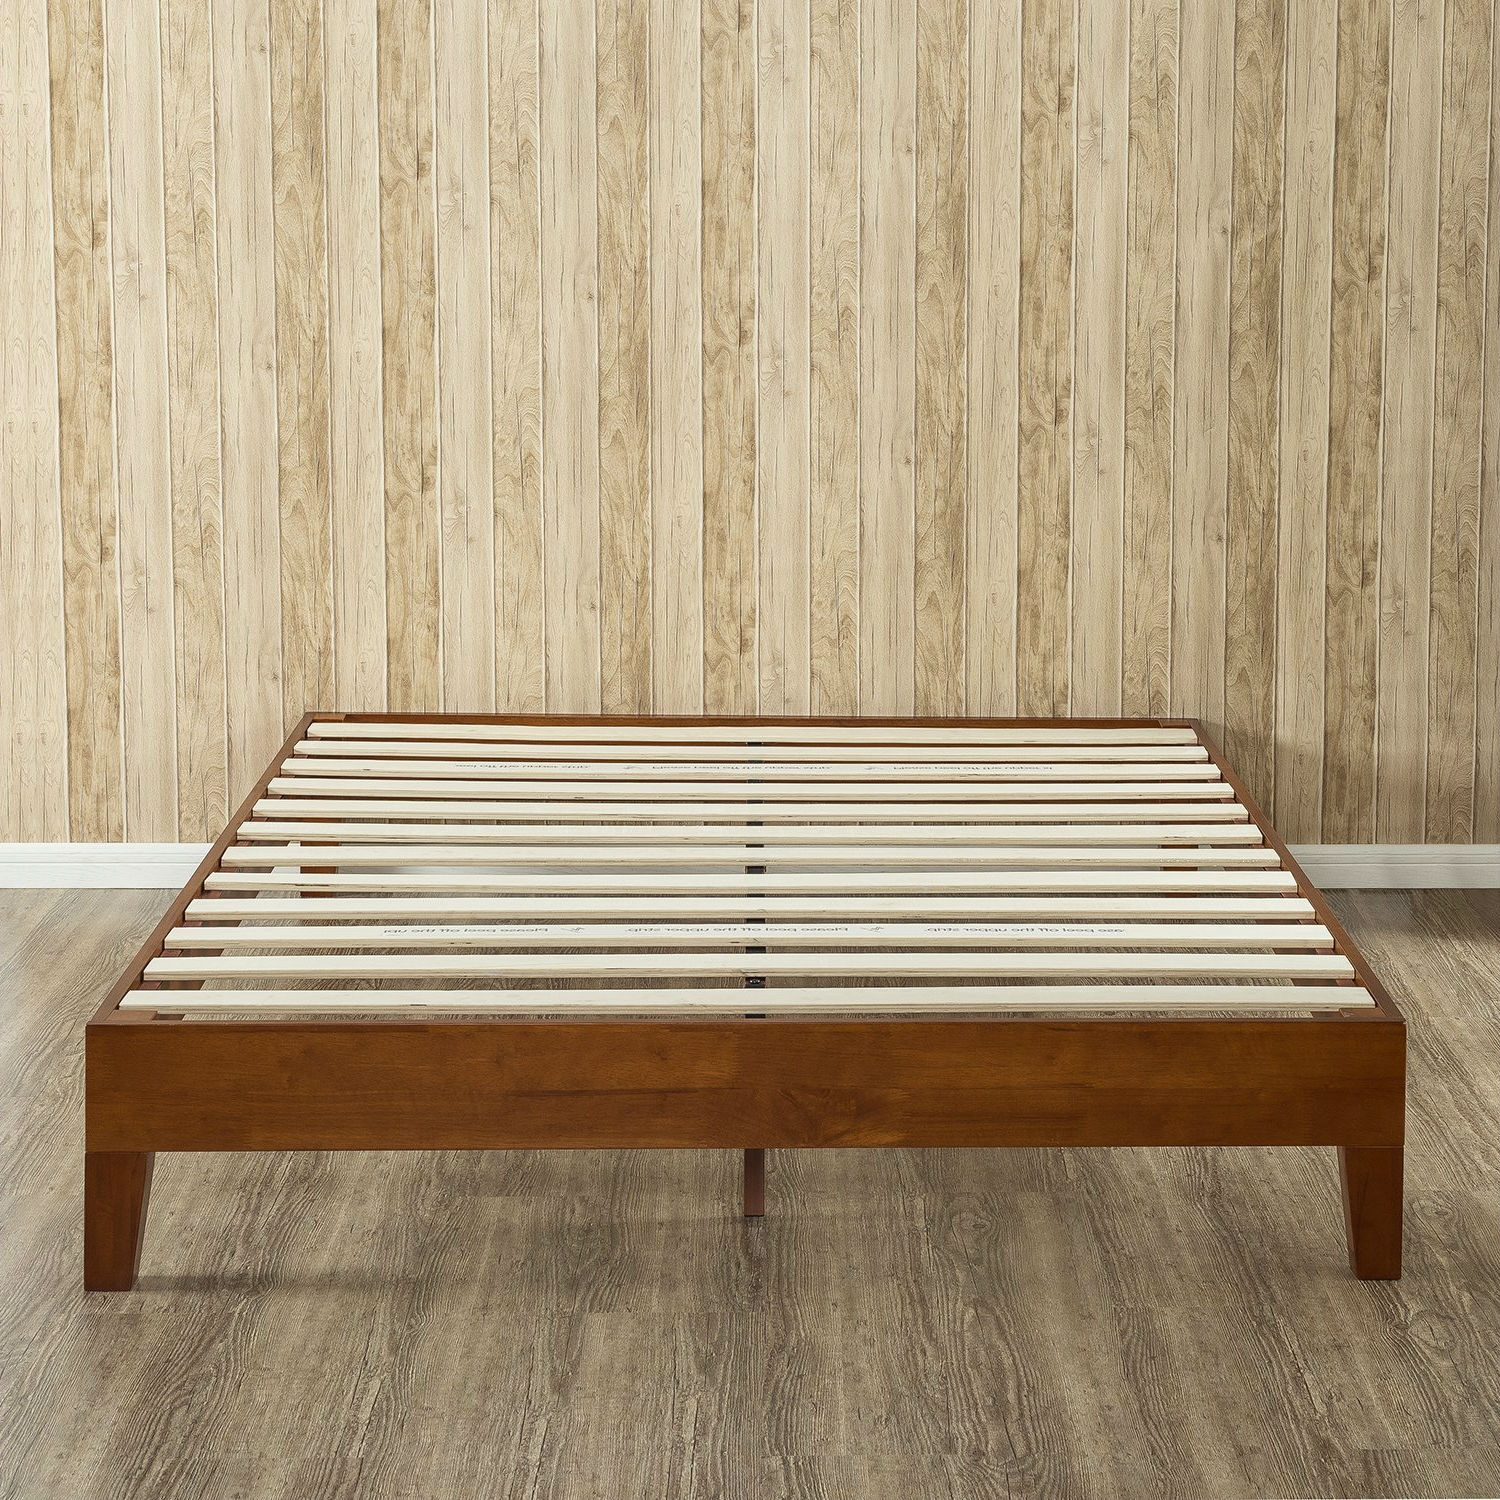 King Size Modern Low Profile Solid Wood Platform Bed Frame